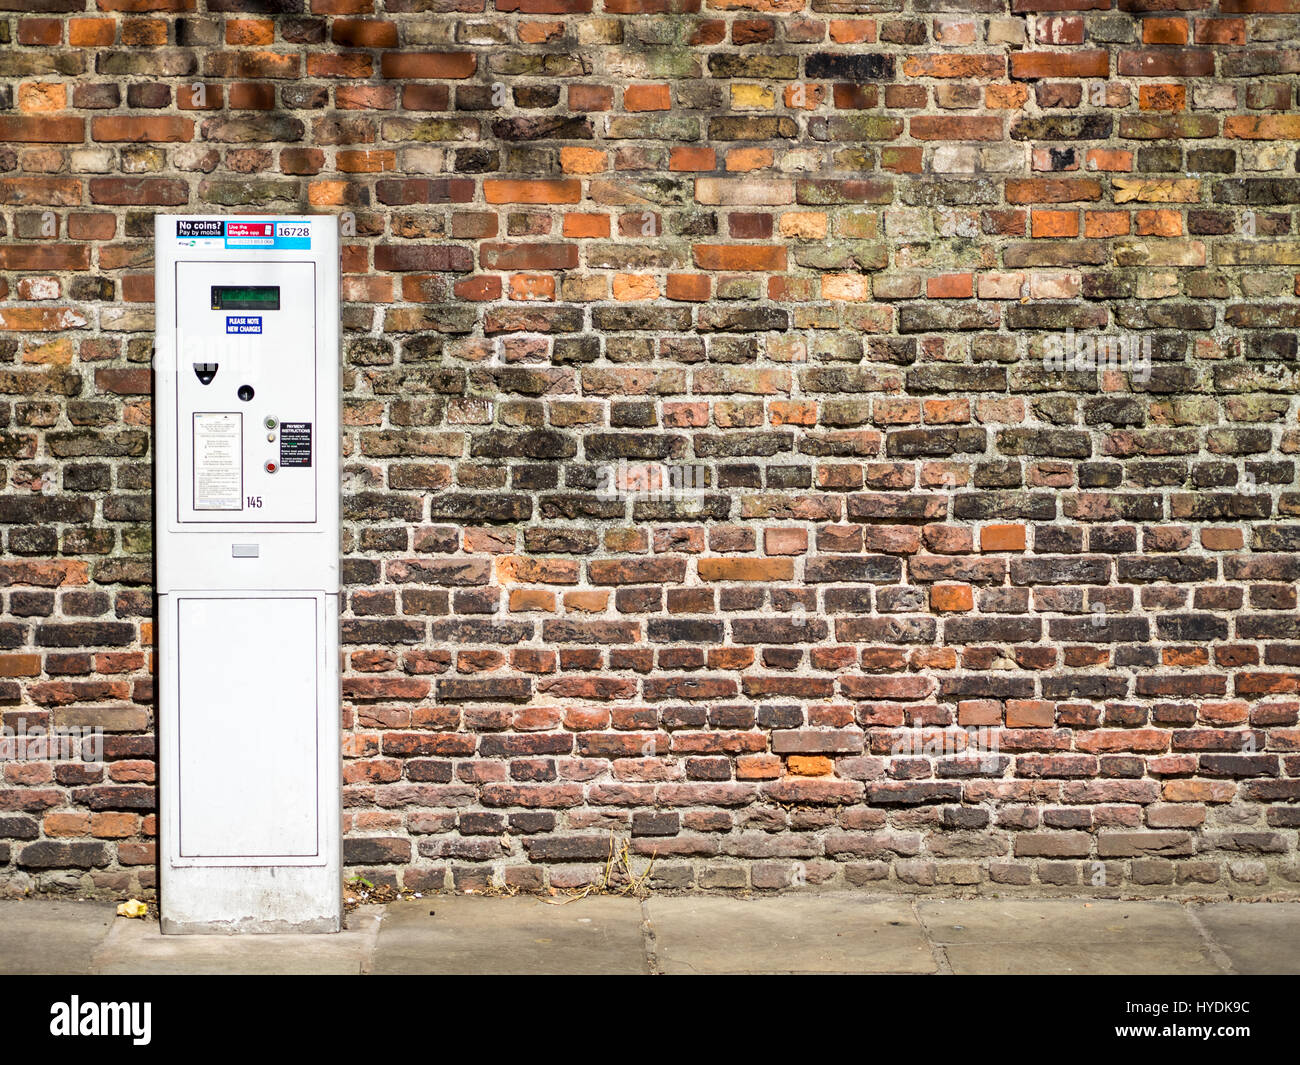 Parking Ticket machine against an old brick wall outside Jesus College, Cambridge, UK Stock Photo